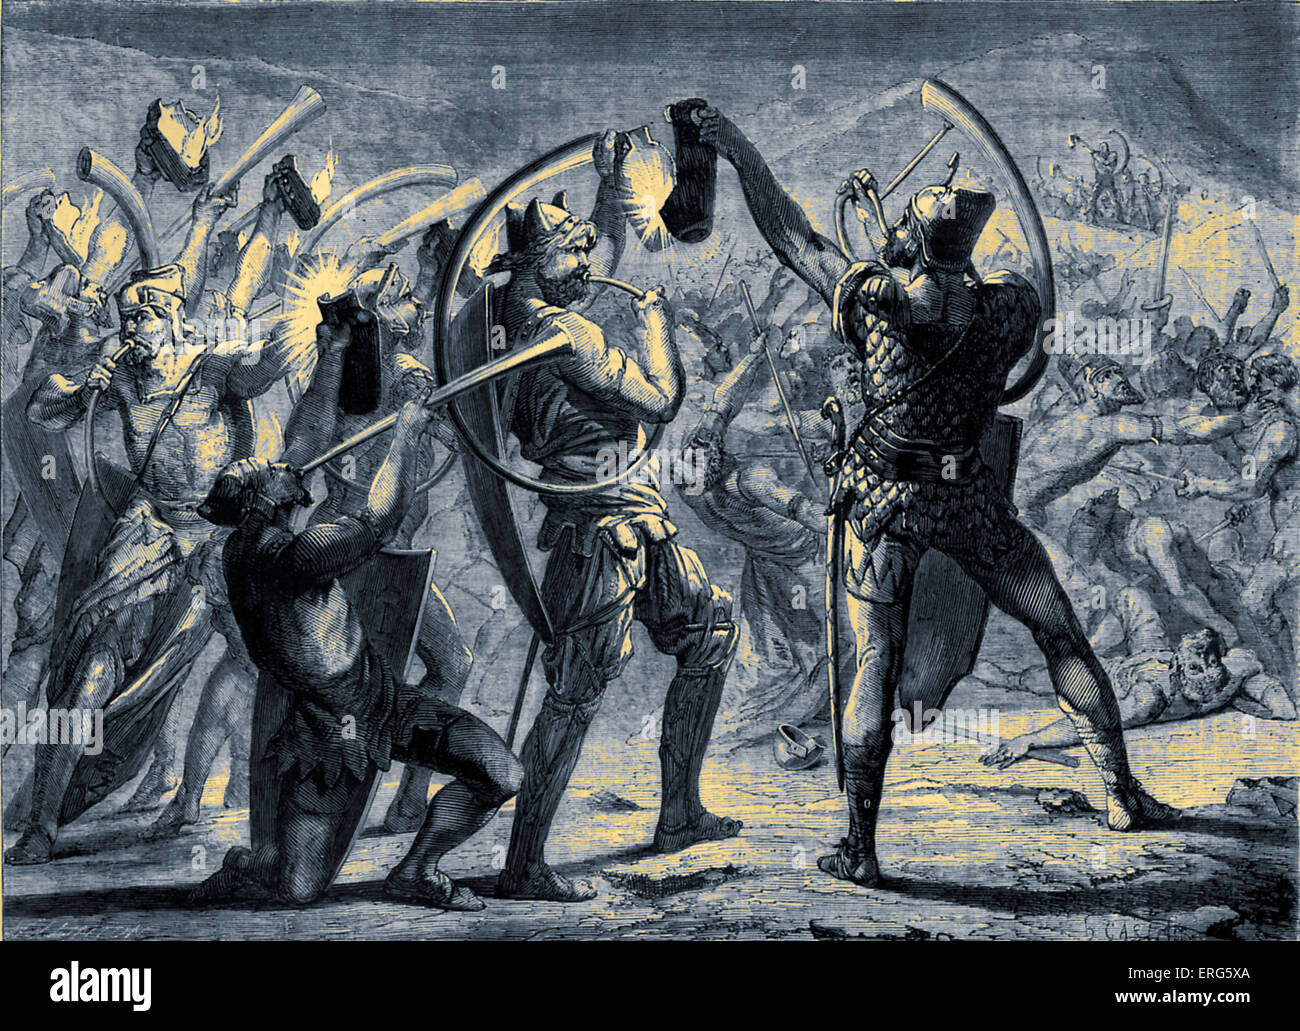 Gideon surprising the army of the Midianites. Gideon and his followers by the stratagem of lamps and trumpets, surprising - Stock Image